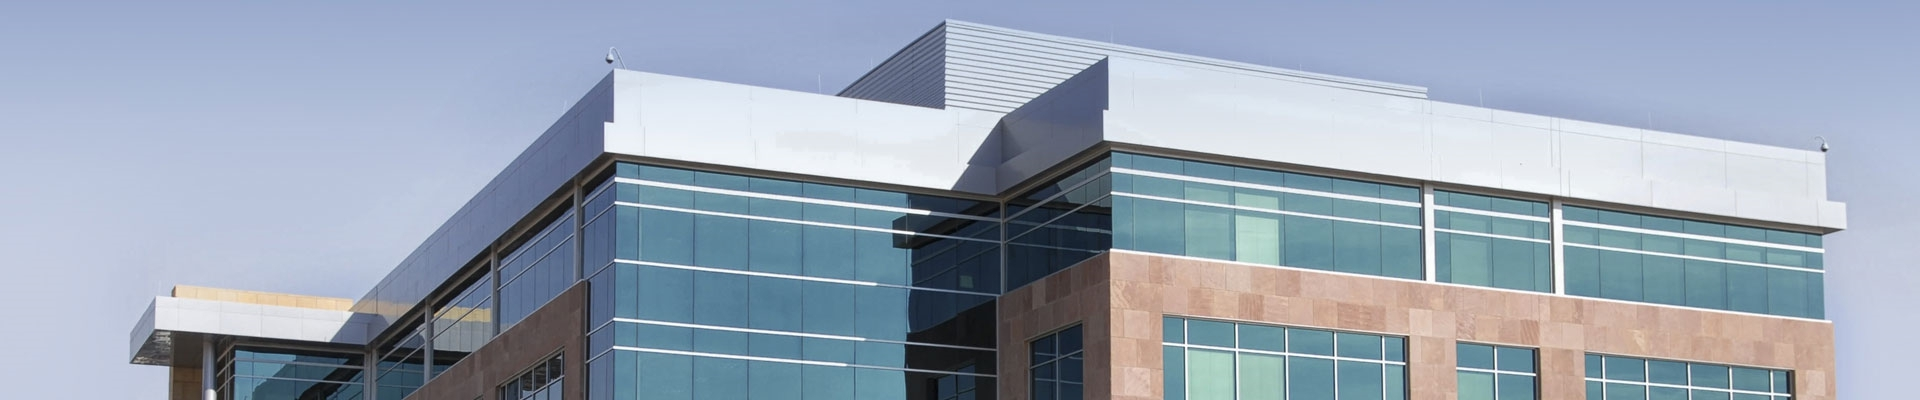 Not only in office buildings but also residential buildings the glass surfaces